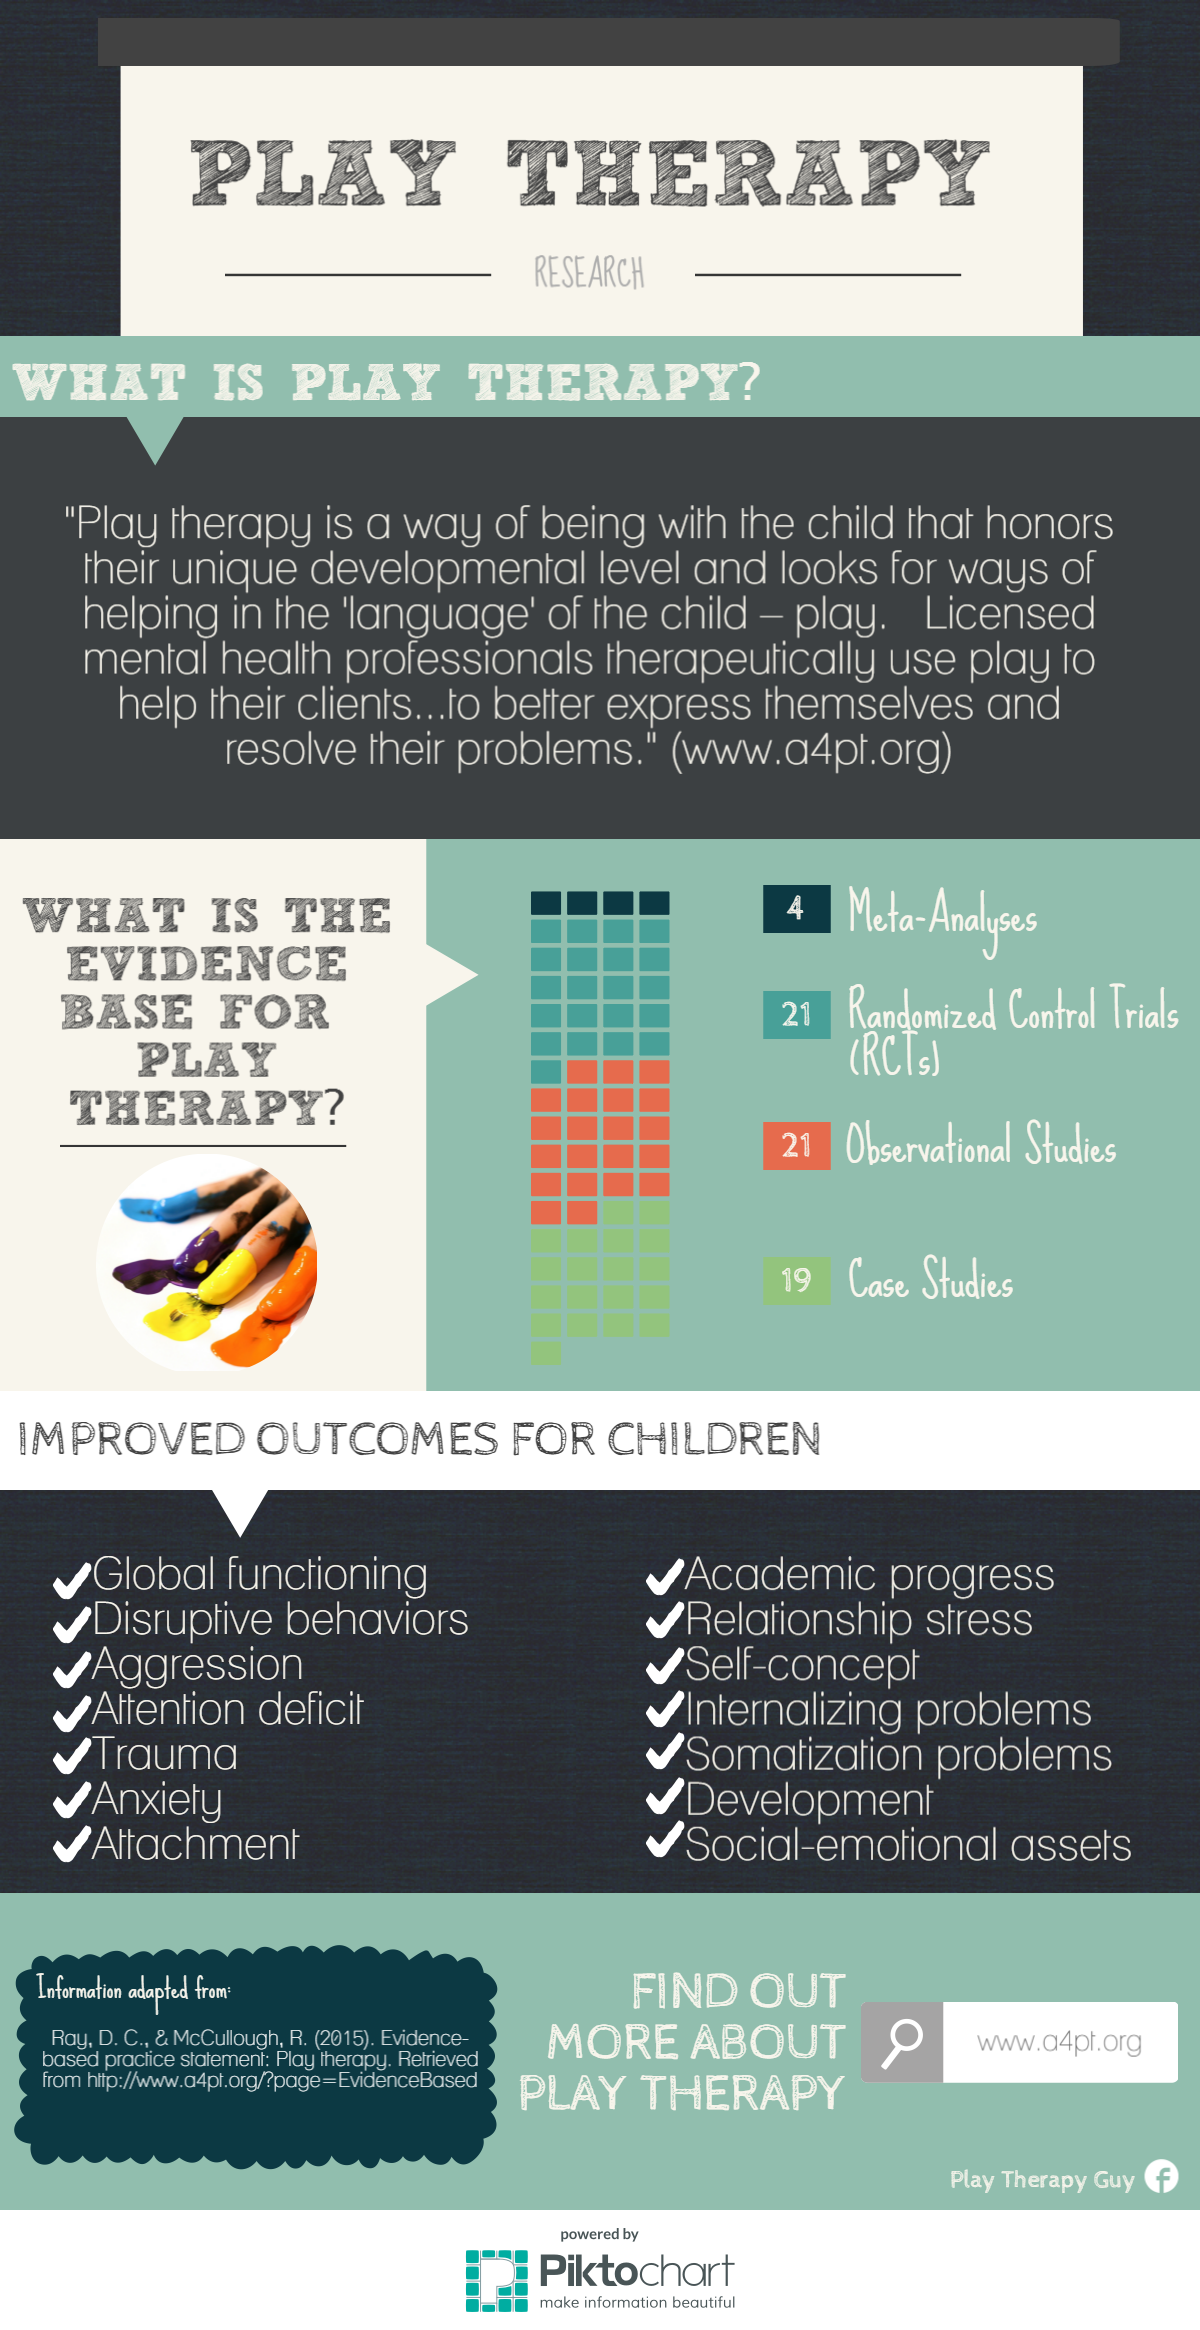 Play Therapy: A Case-based Example of a Nondirective ...